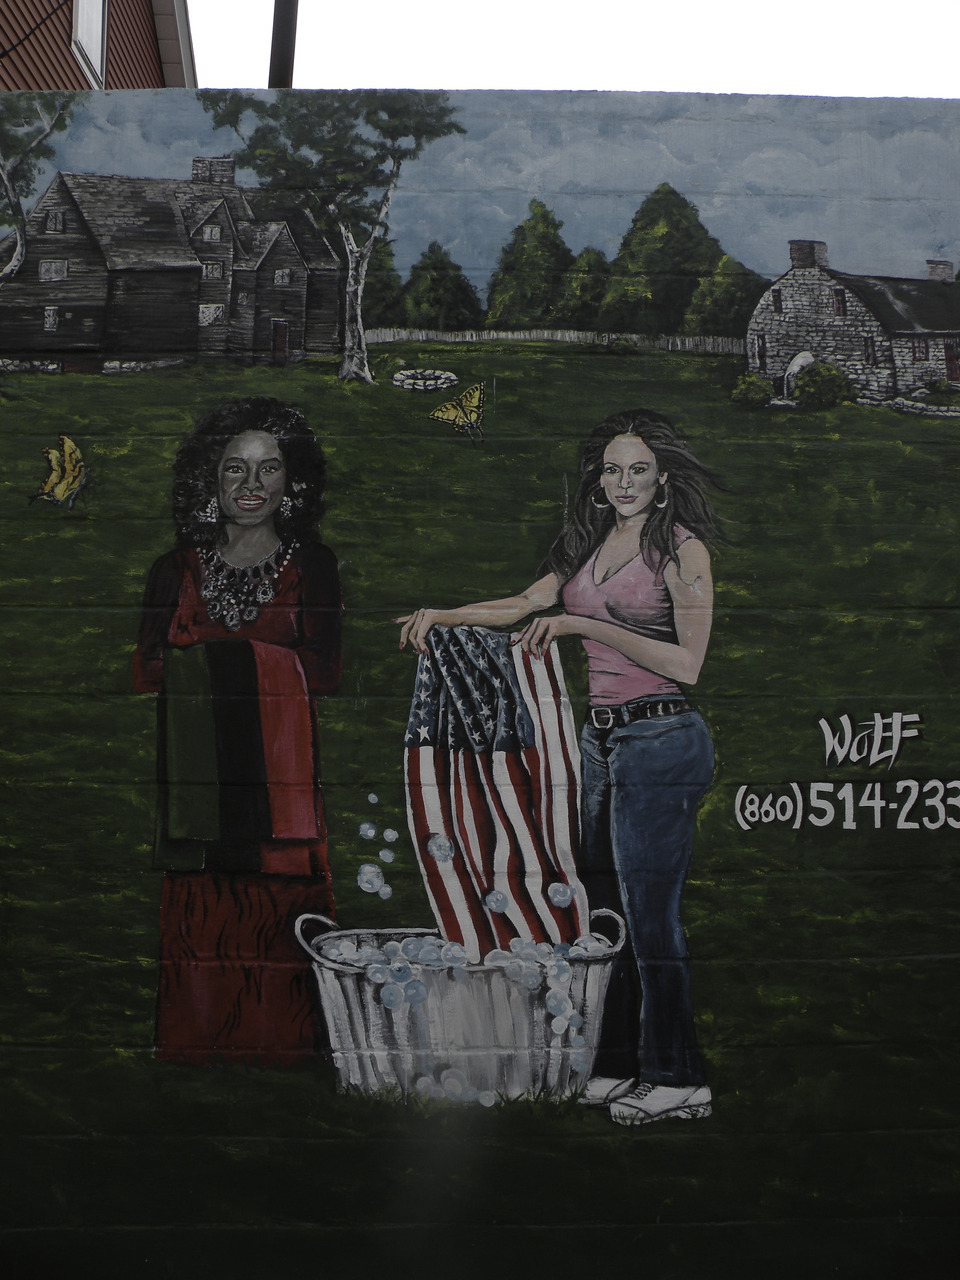 i haven't been able to share my projects lately because they've been gifts for people who read this. i made a movie for my sister and i'm working on a thing for a person right now. later today we're going to bend for memorial day but i'll leave you this amazing & inspiring mural my sister took me to in new london, connecticut, depicting oprah & j.lo washing an american flag. enjoy